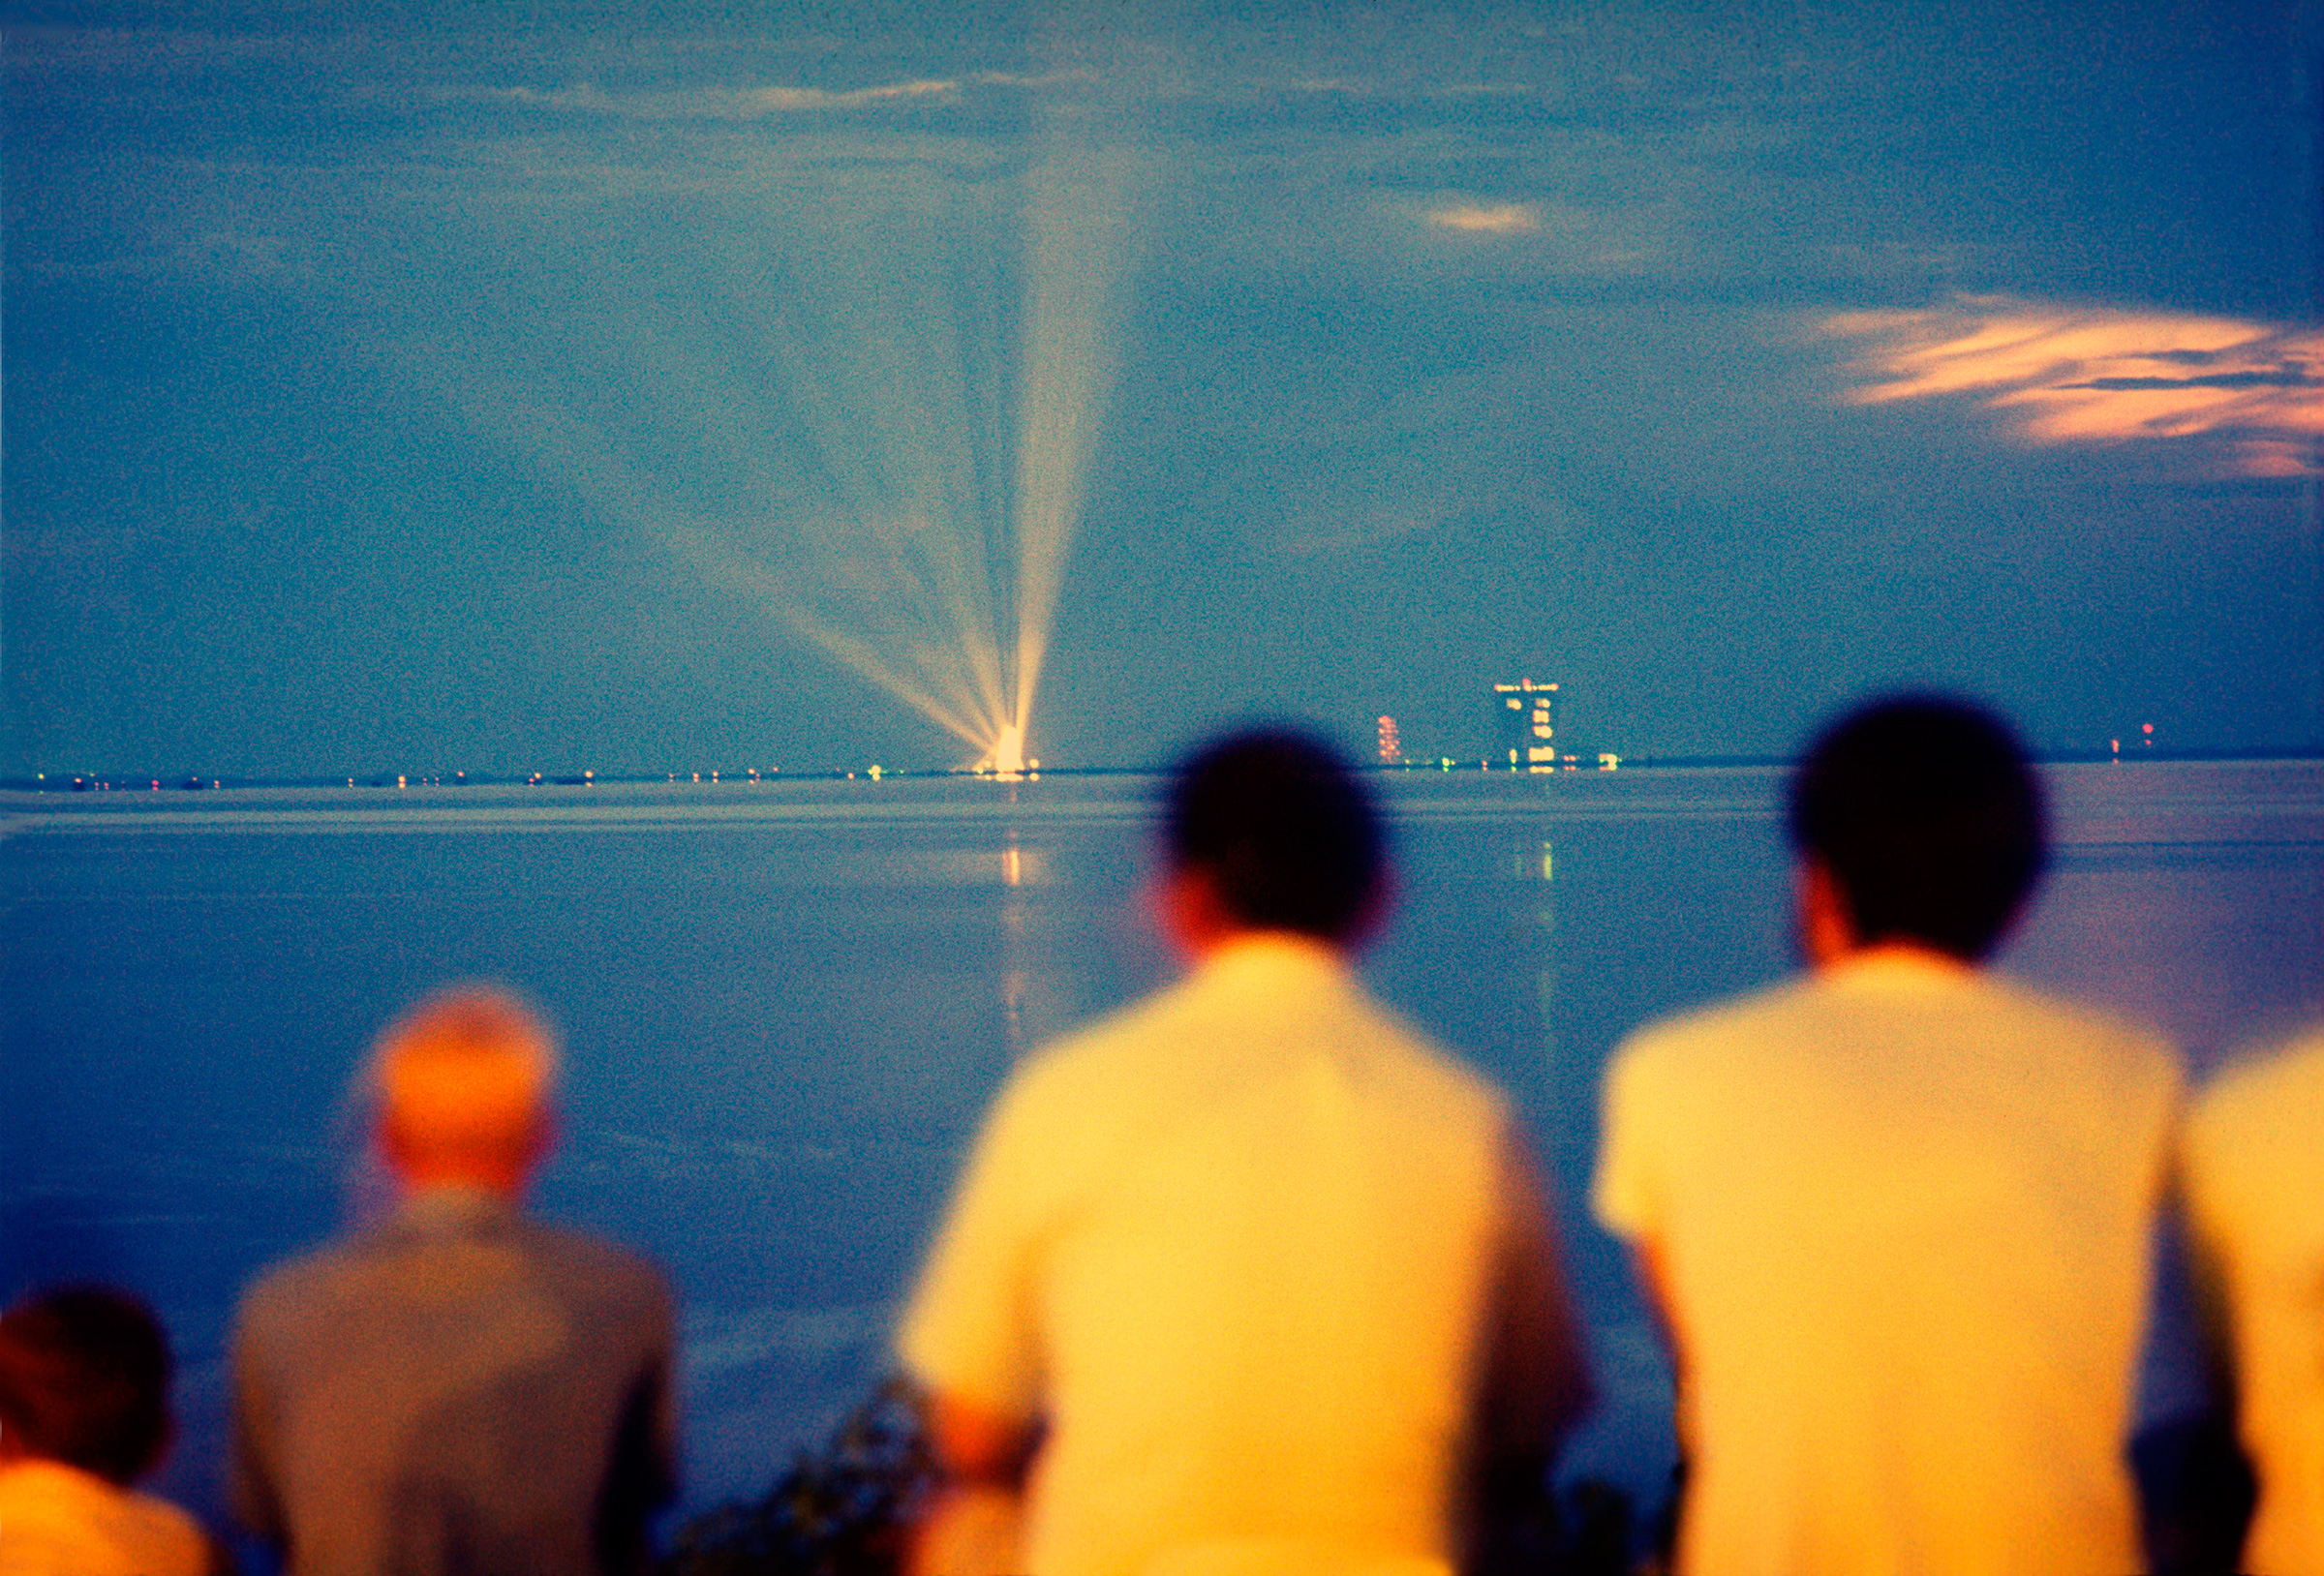 At around dusk,  says Burnett,  NASA put the lights of the launch pad on.